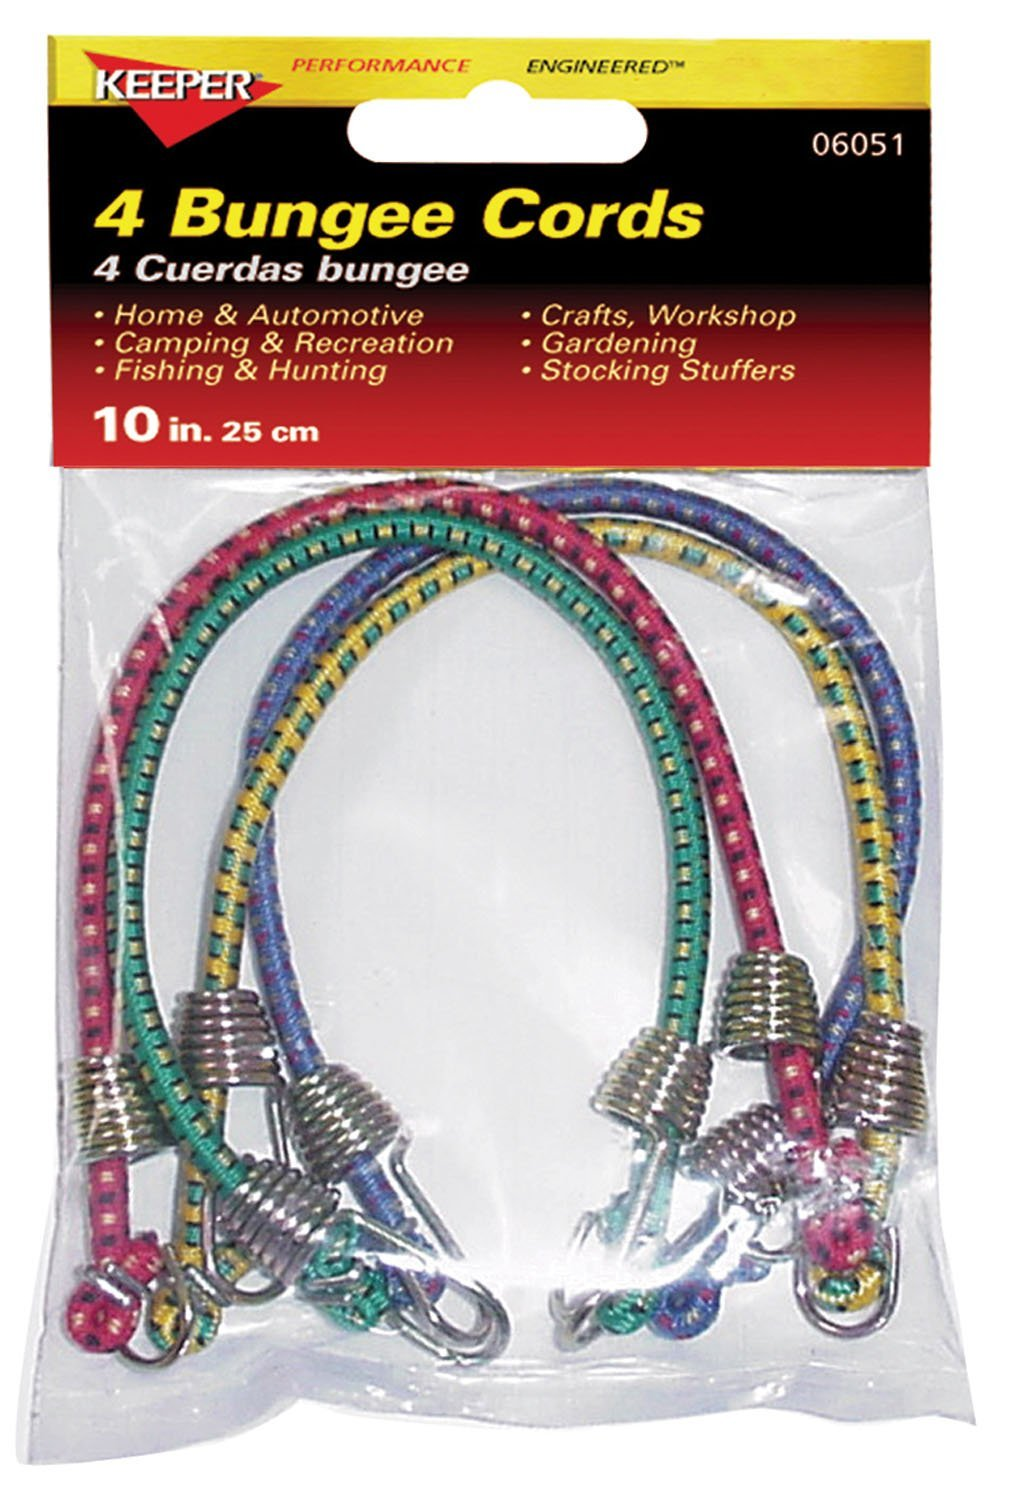 HAMPTON PRODUCTS-KEEPER - Mini Bungee Cord, 4-Pack, 10-Inch by Hampton Products Keeper 06051